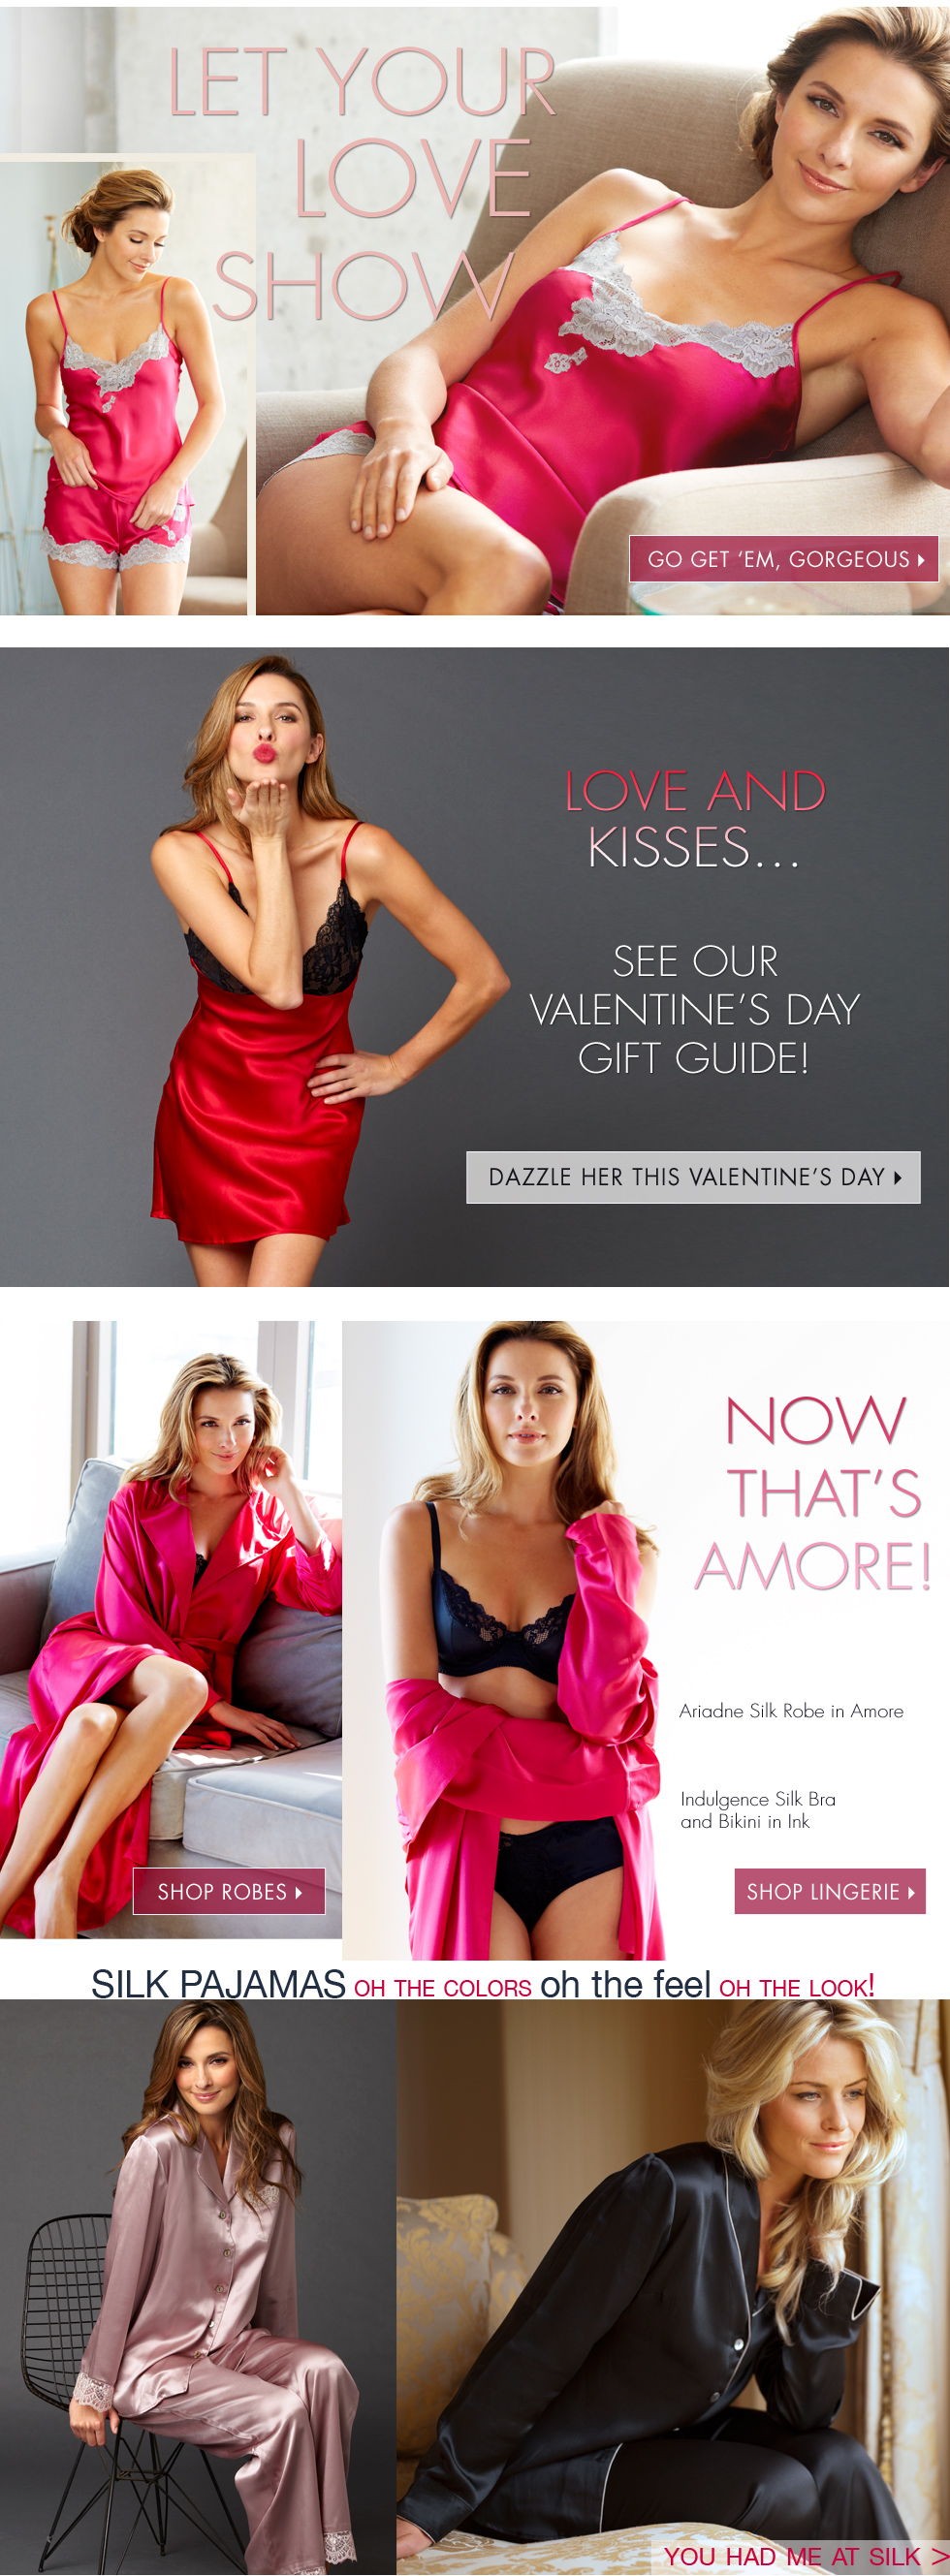 valentine's day made easy - luxurious lingerie and sleepwear!